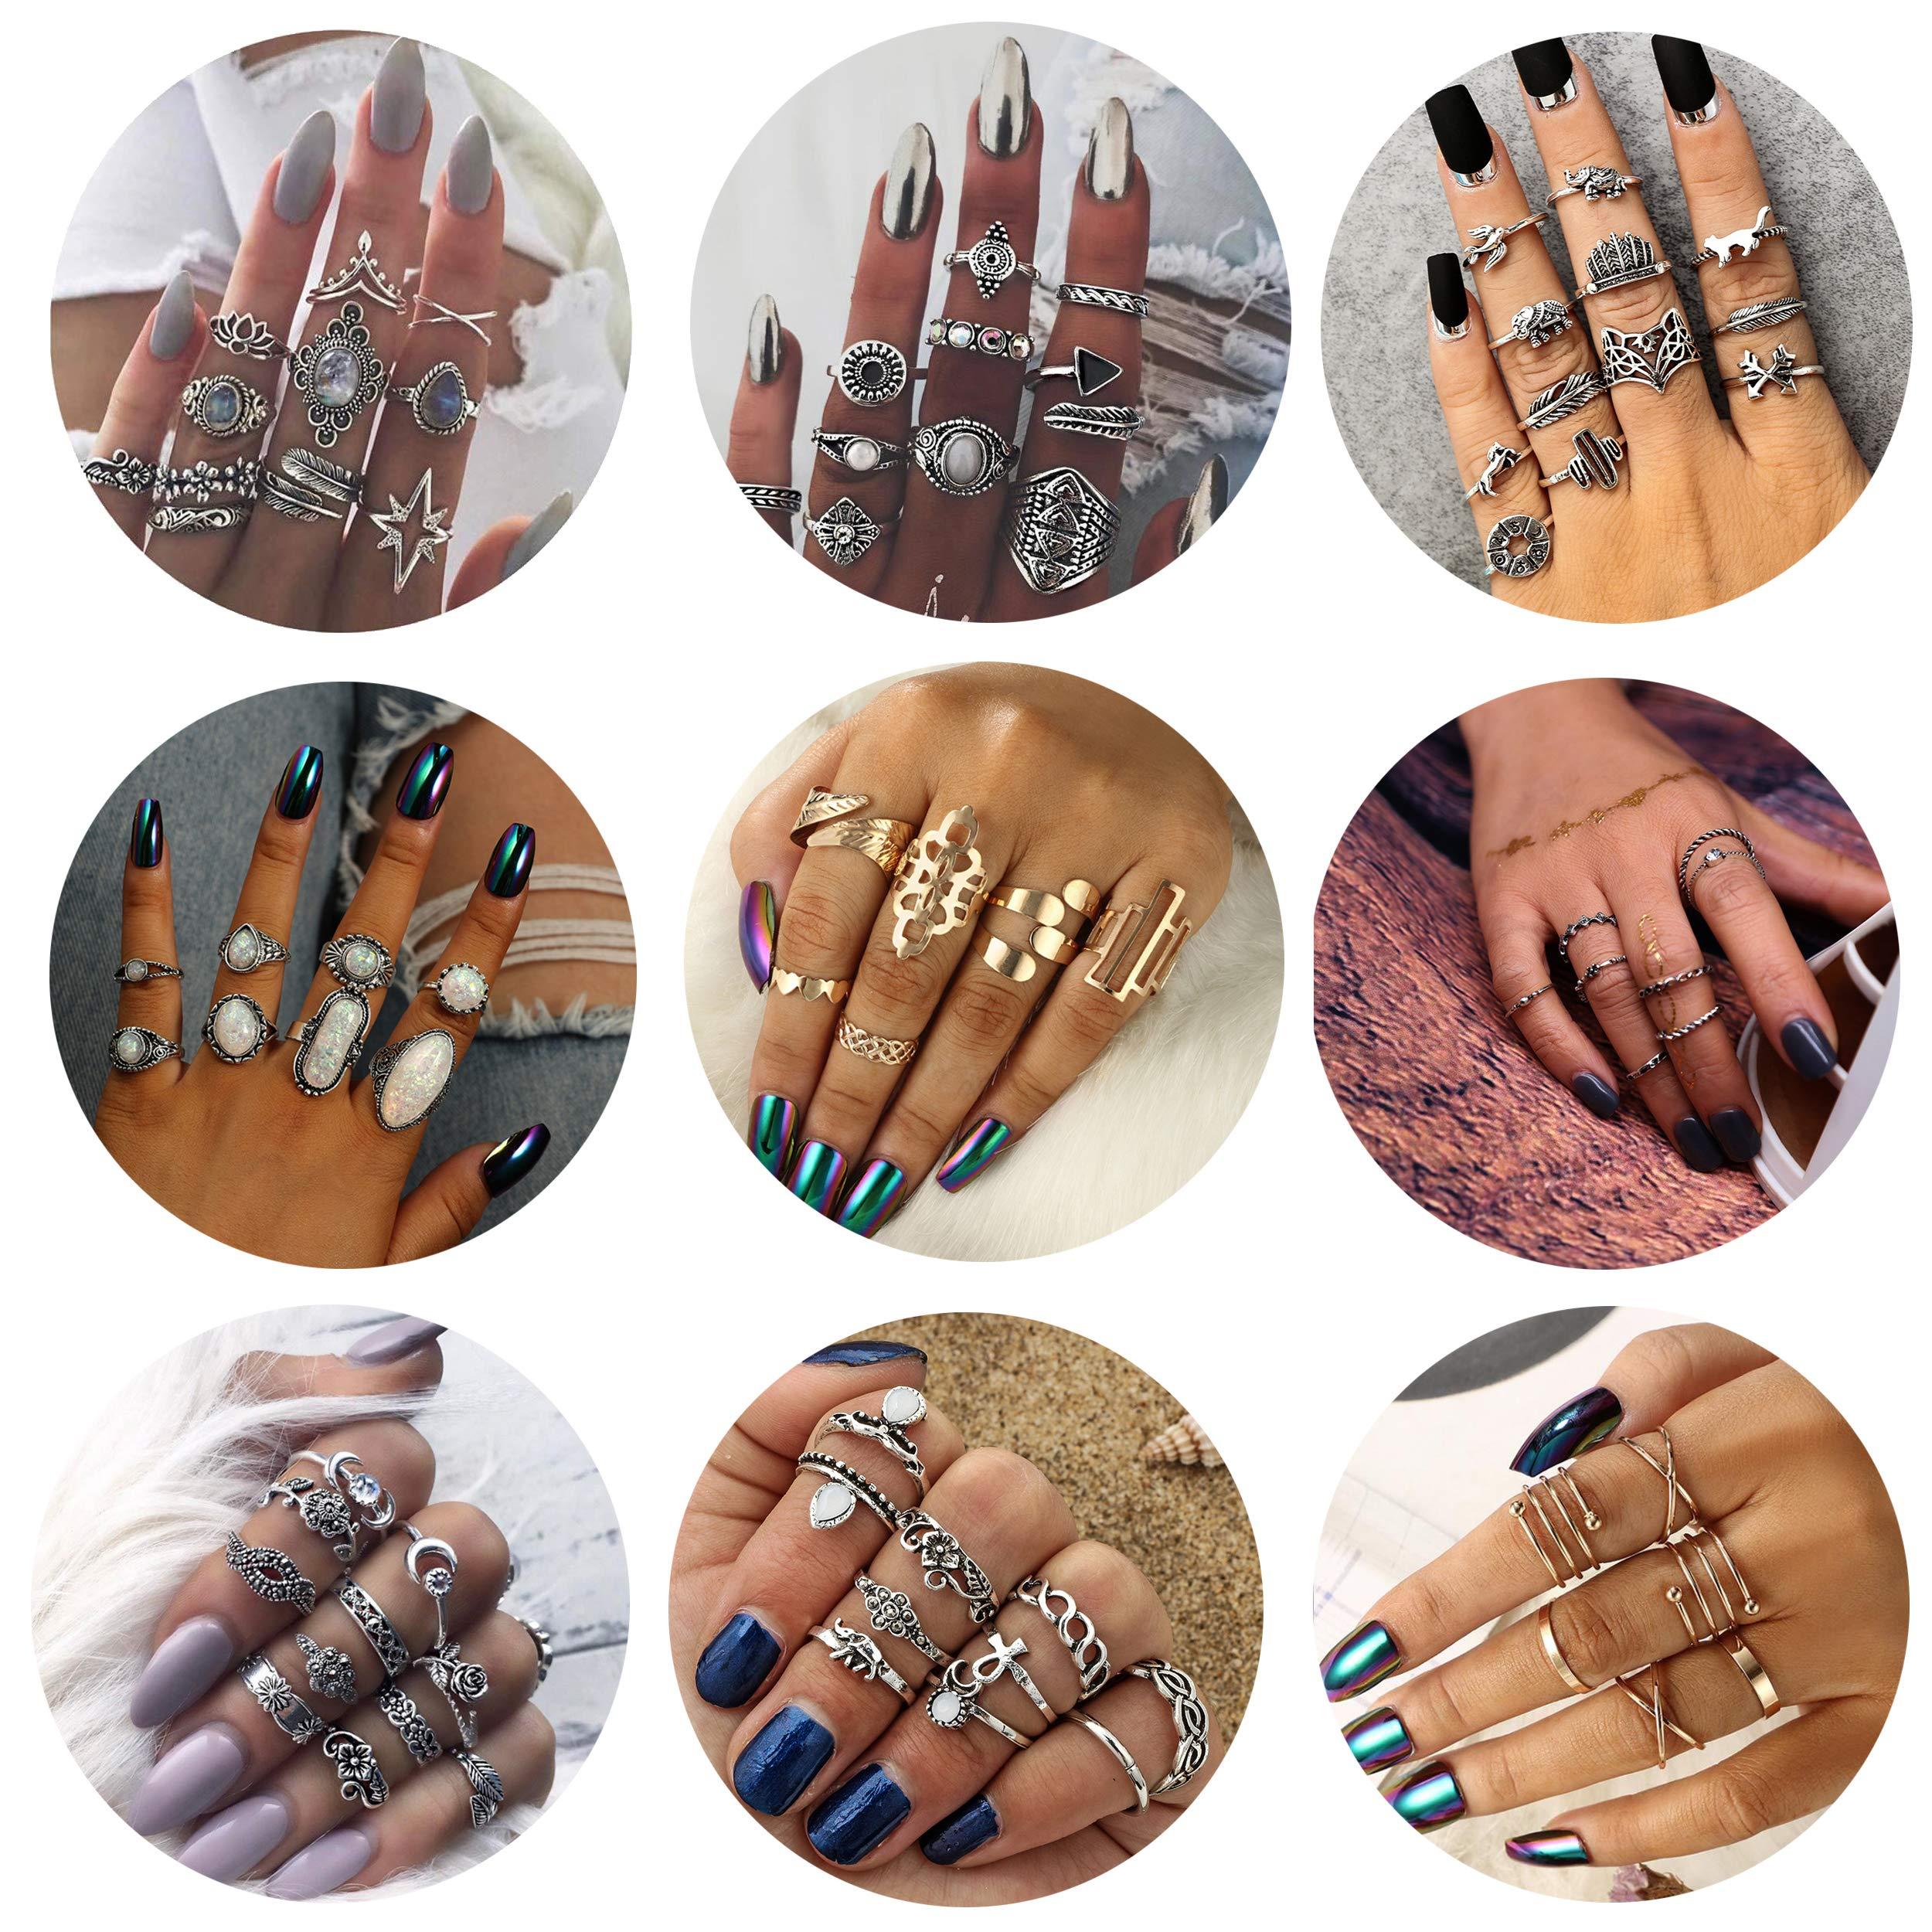 Besteel 82 Pcs Womens Knuckle Rings for Girls Stackable Midi Joint Finger Ring Set (E:82 Pcs A Set)